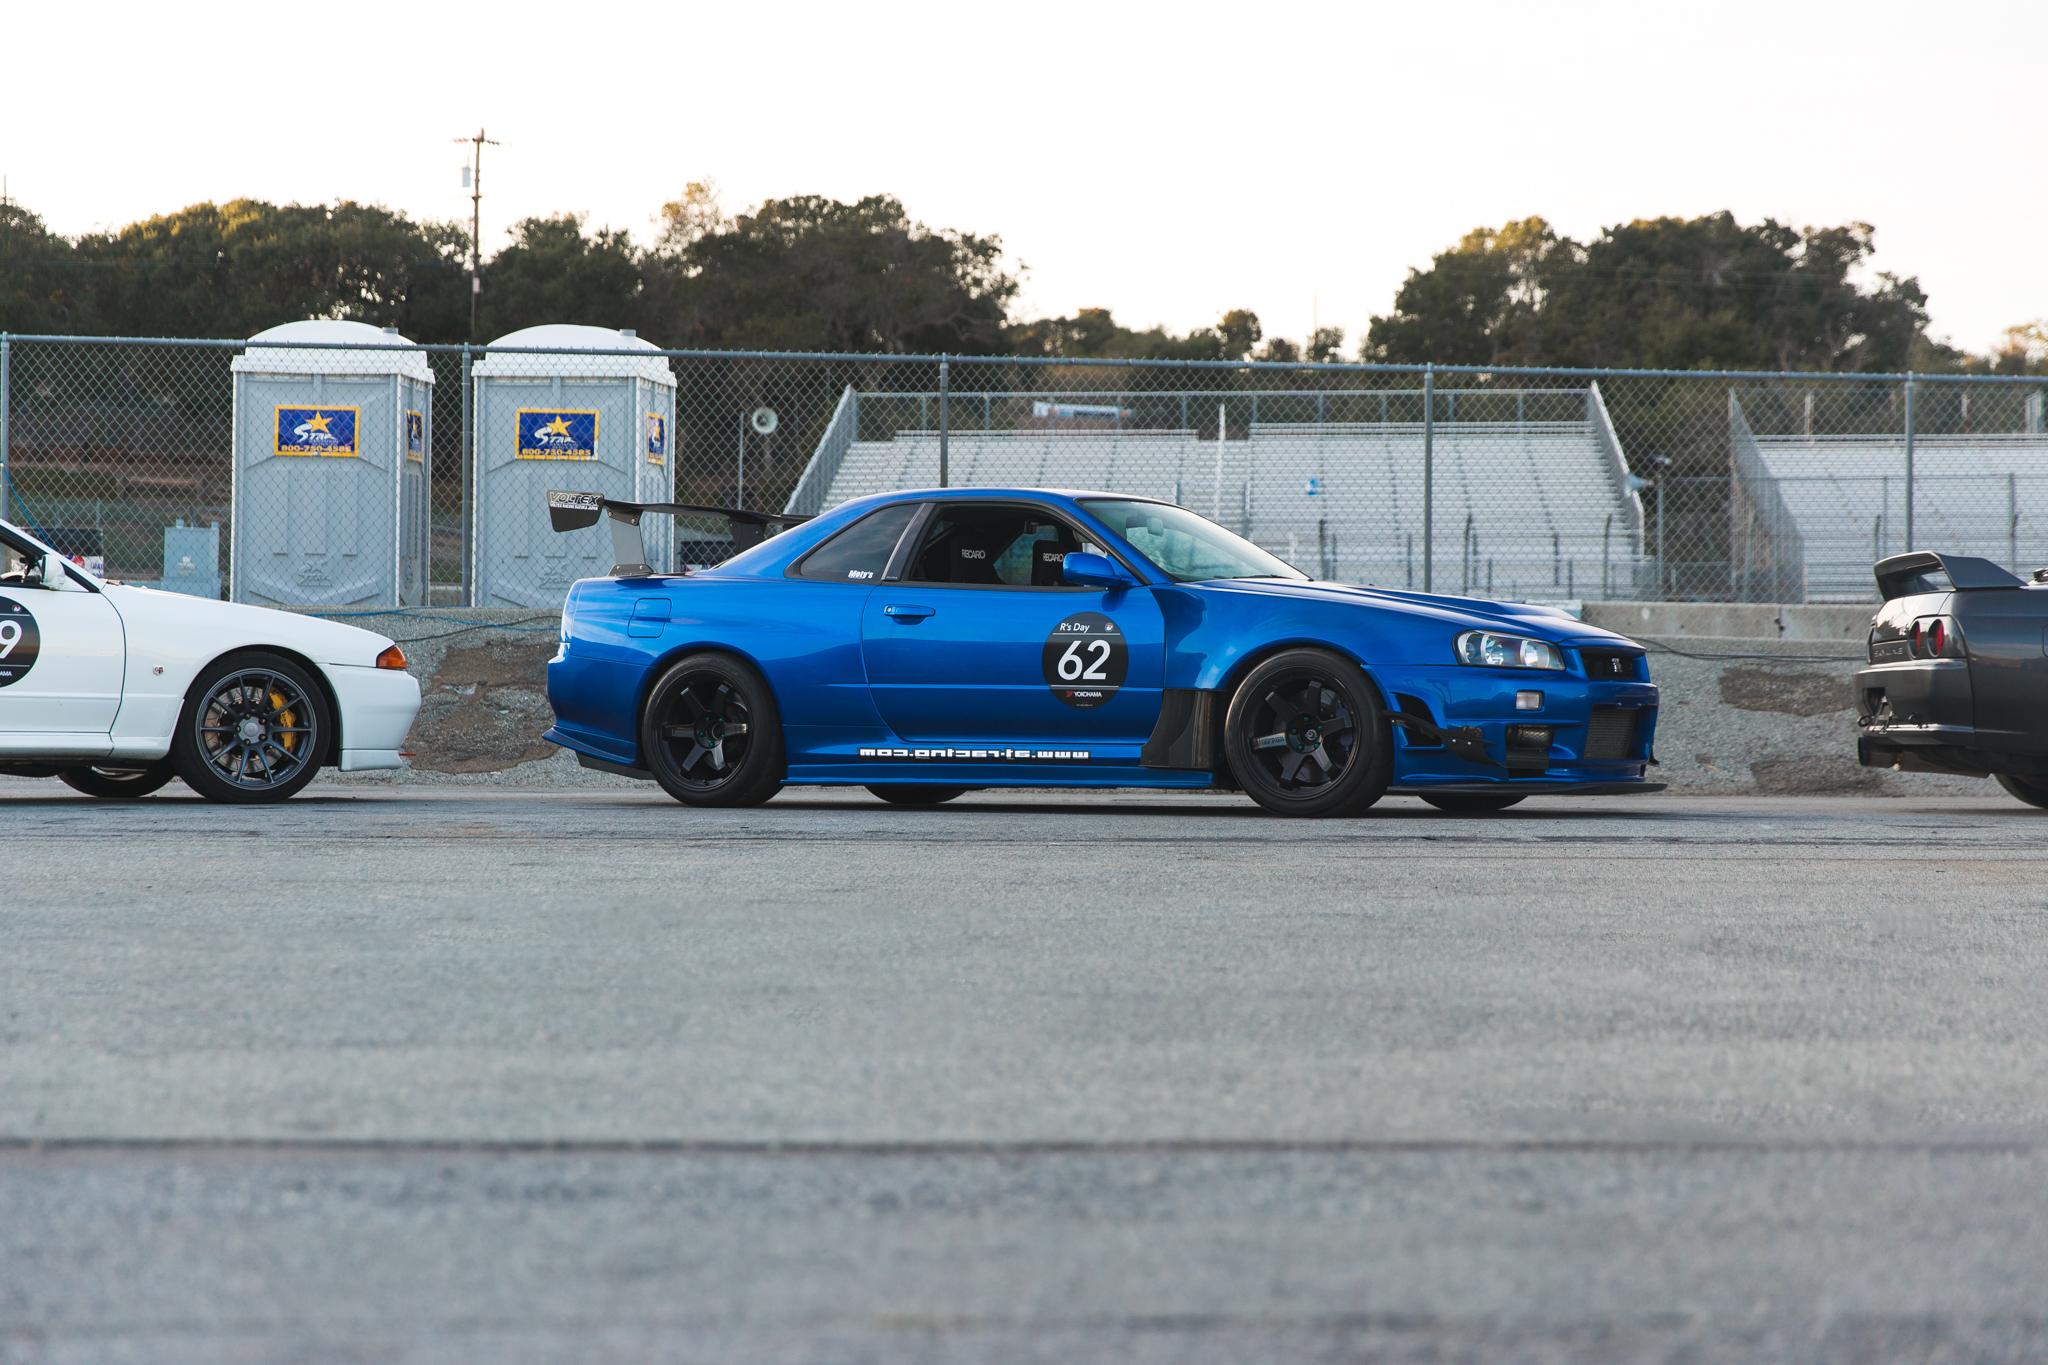 Stay_Driven_Rs_Day-117.jpg